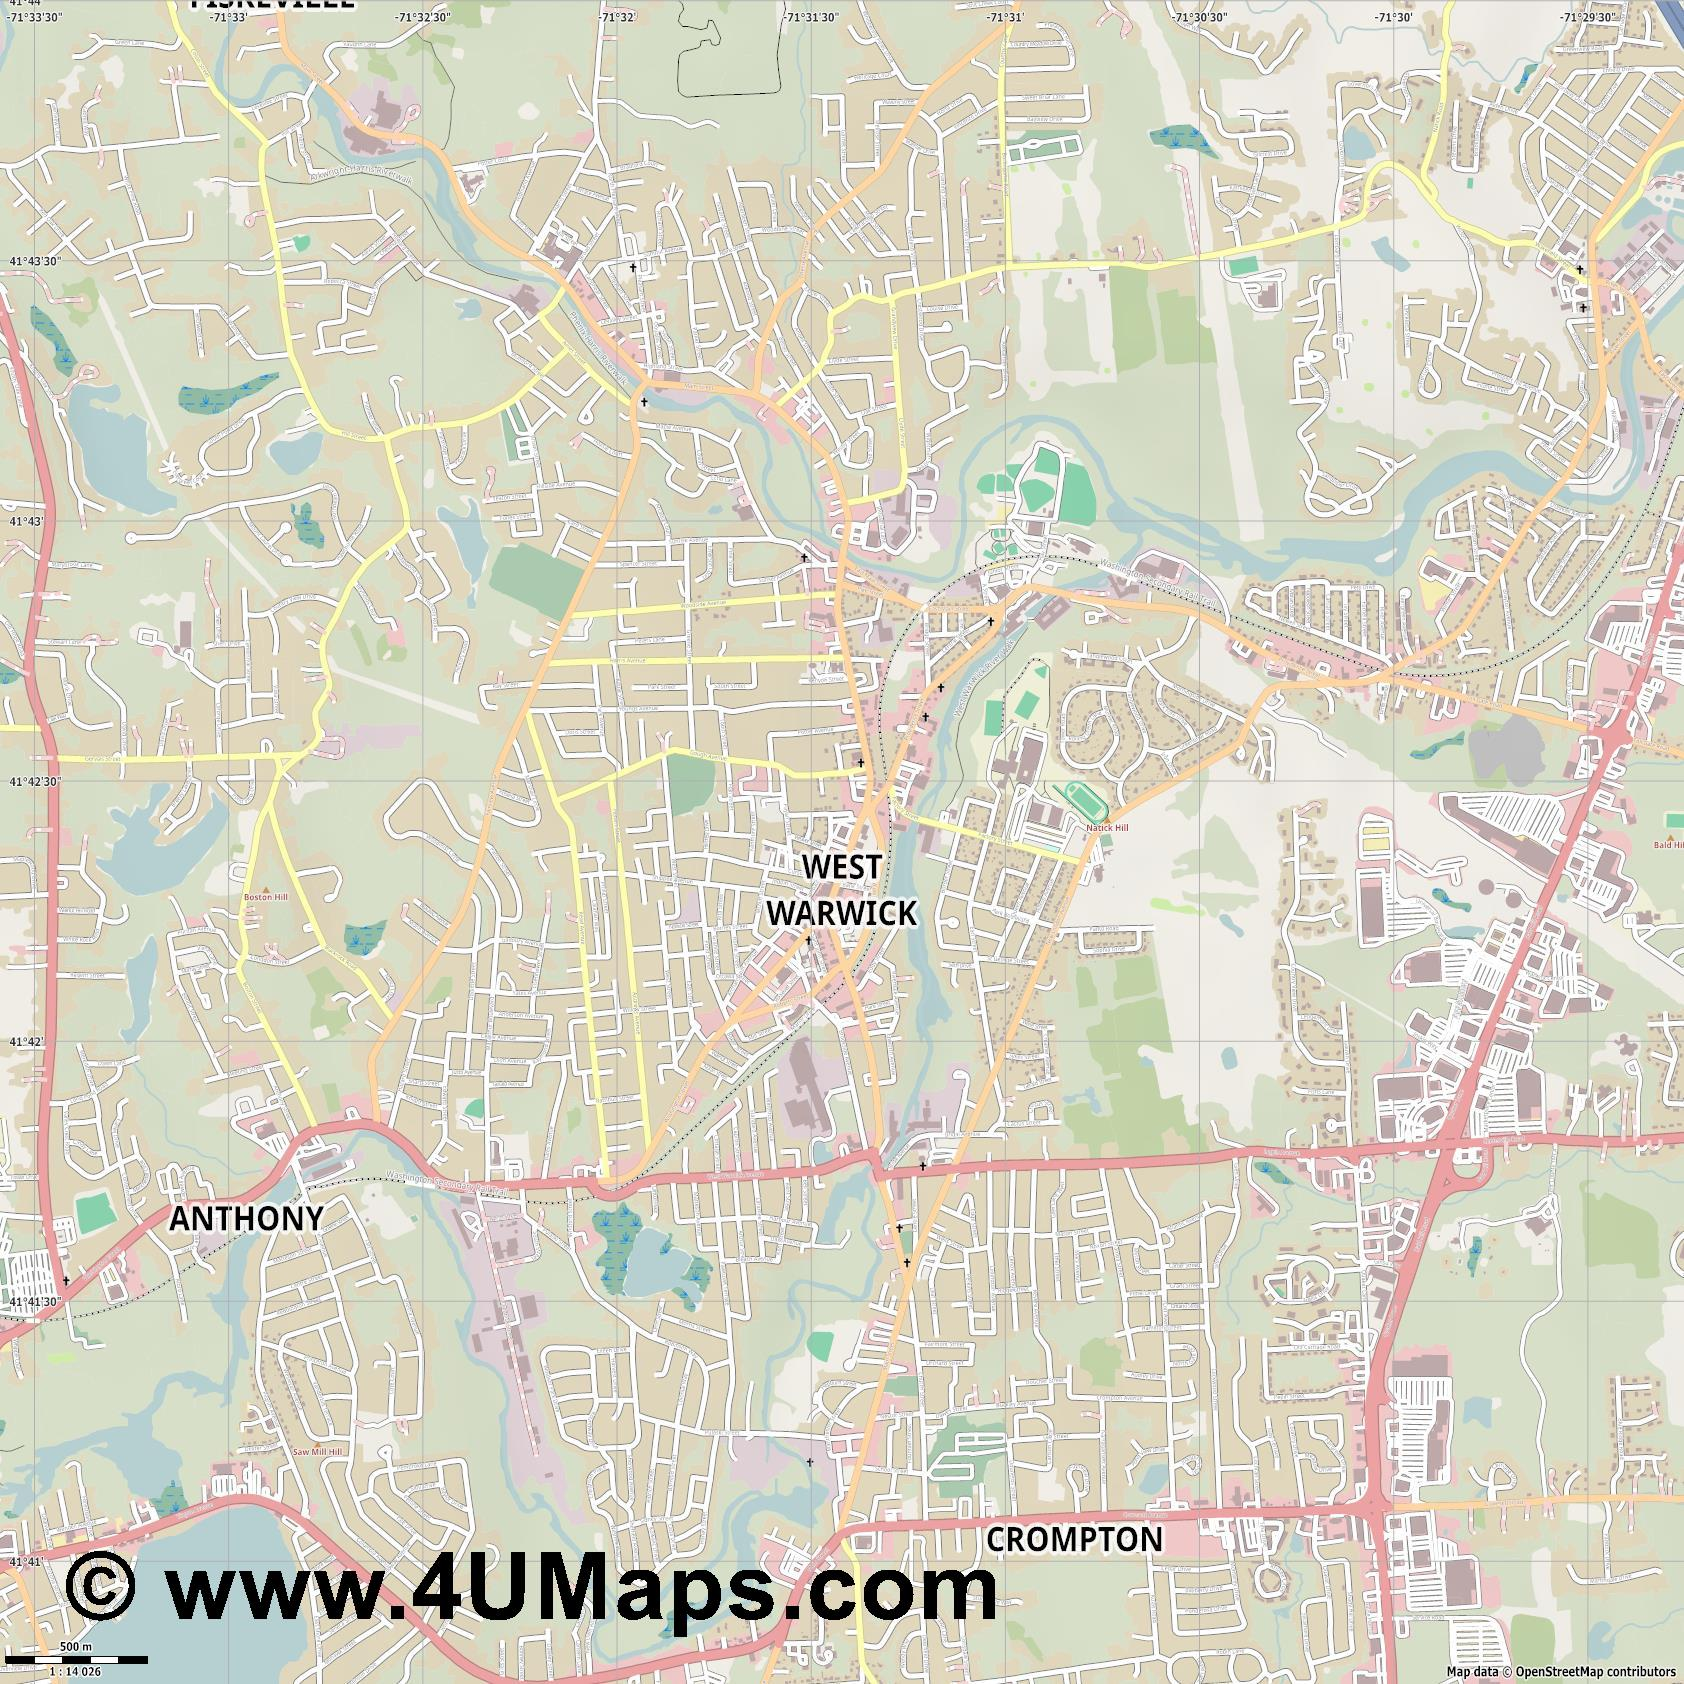 West Warwick  jpg ultra high detail preview vector city map